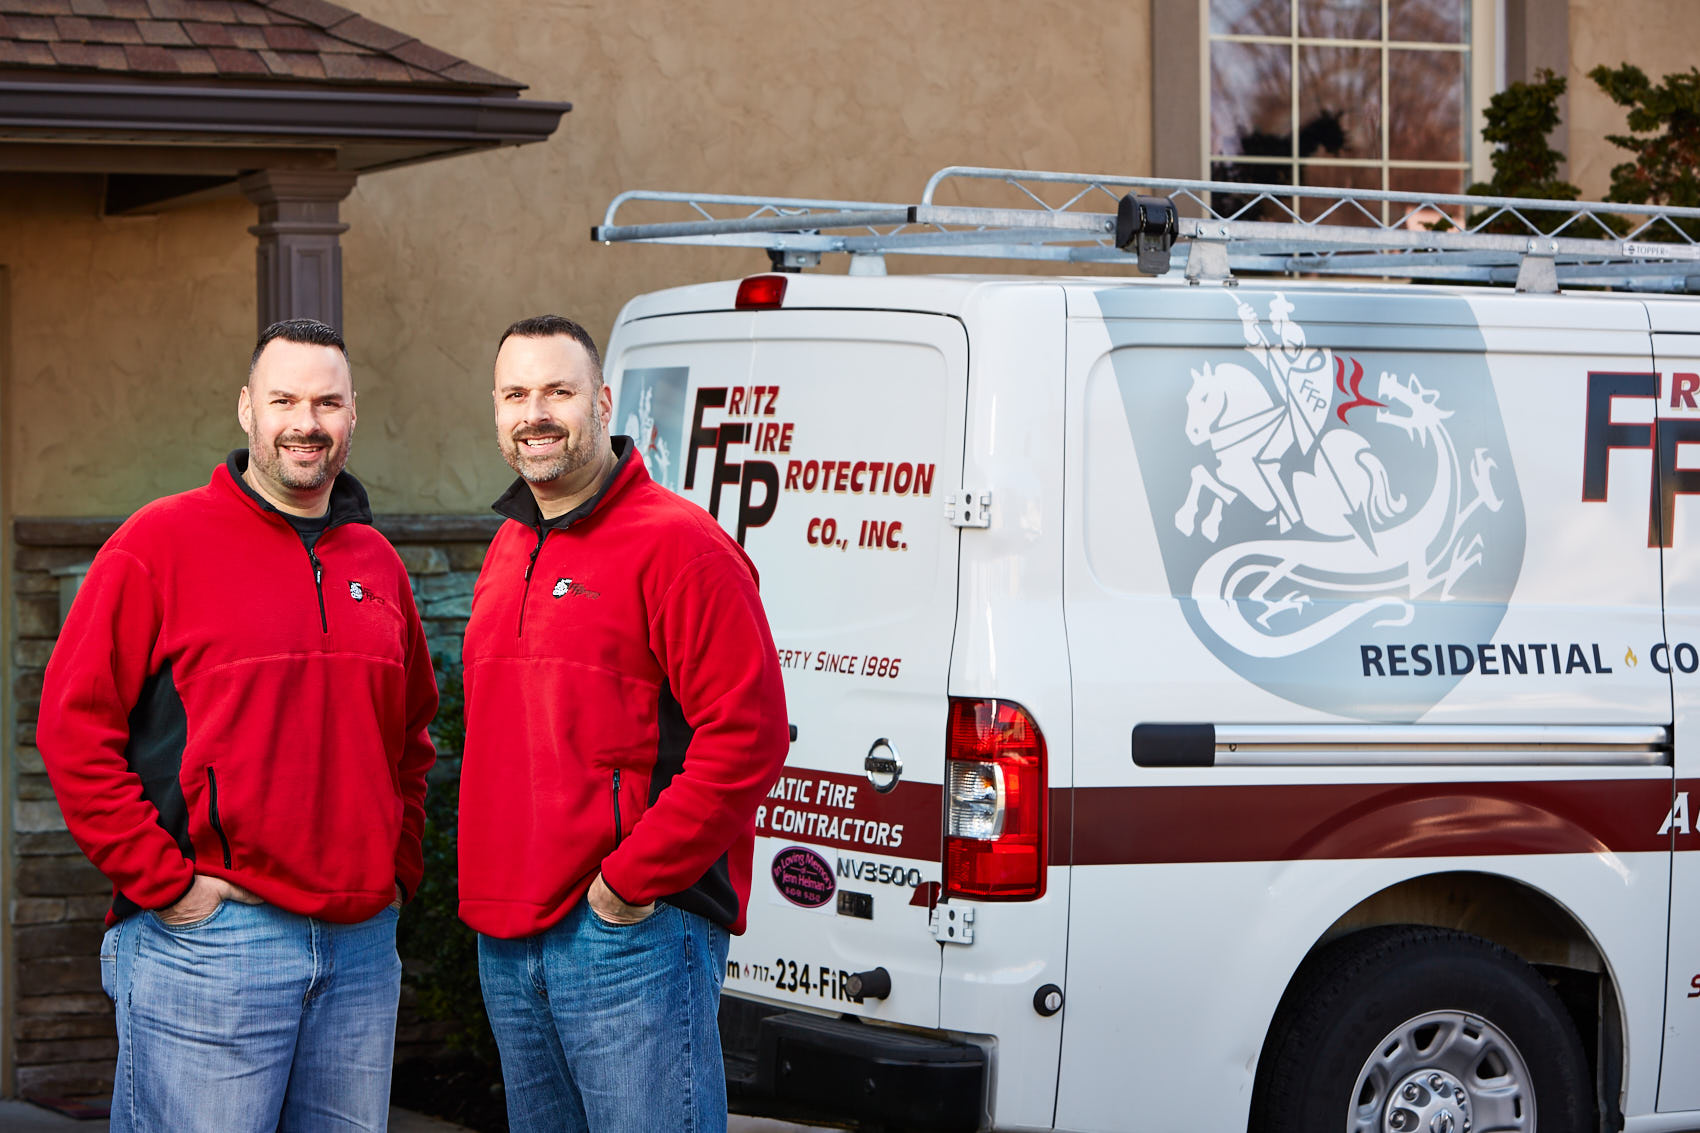 Fritz Fire Protection